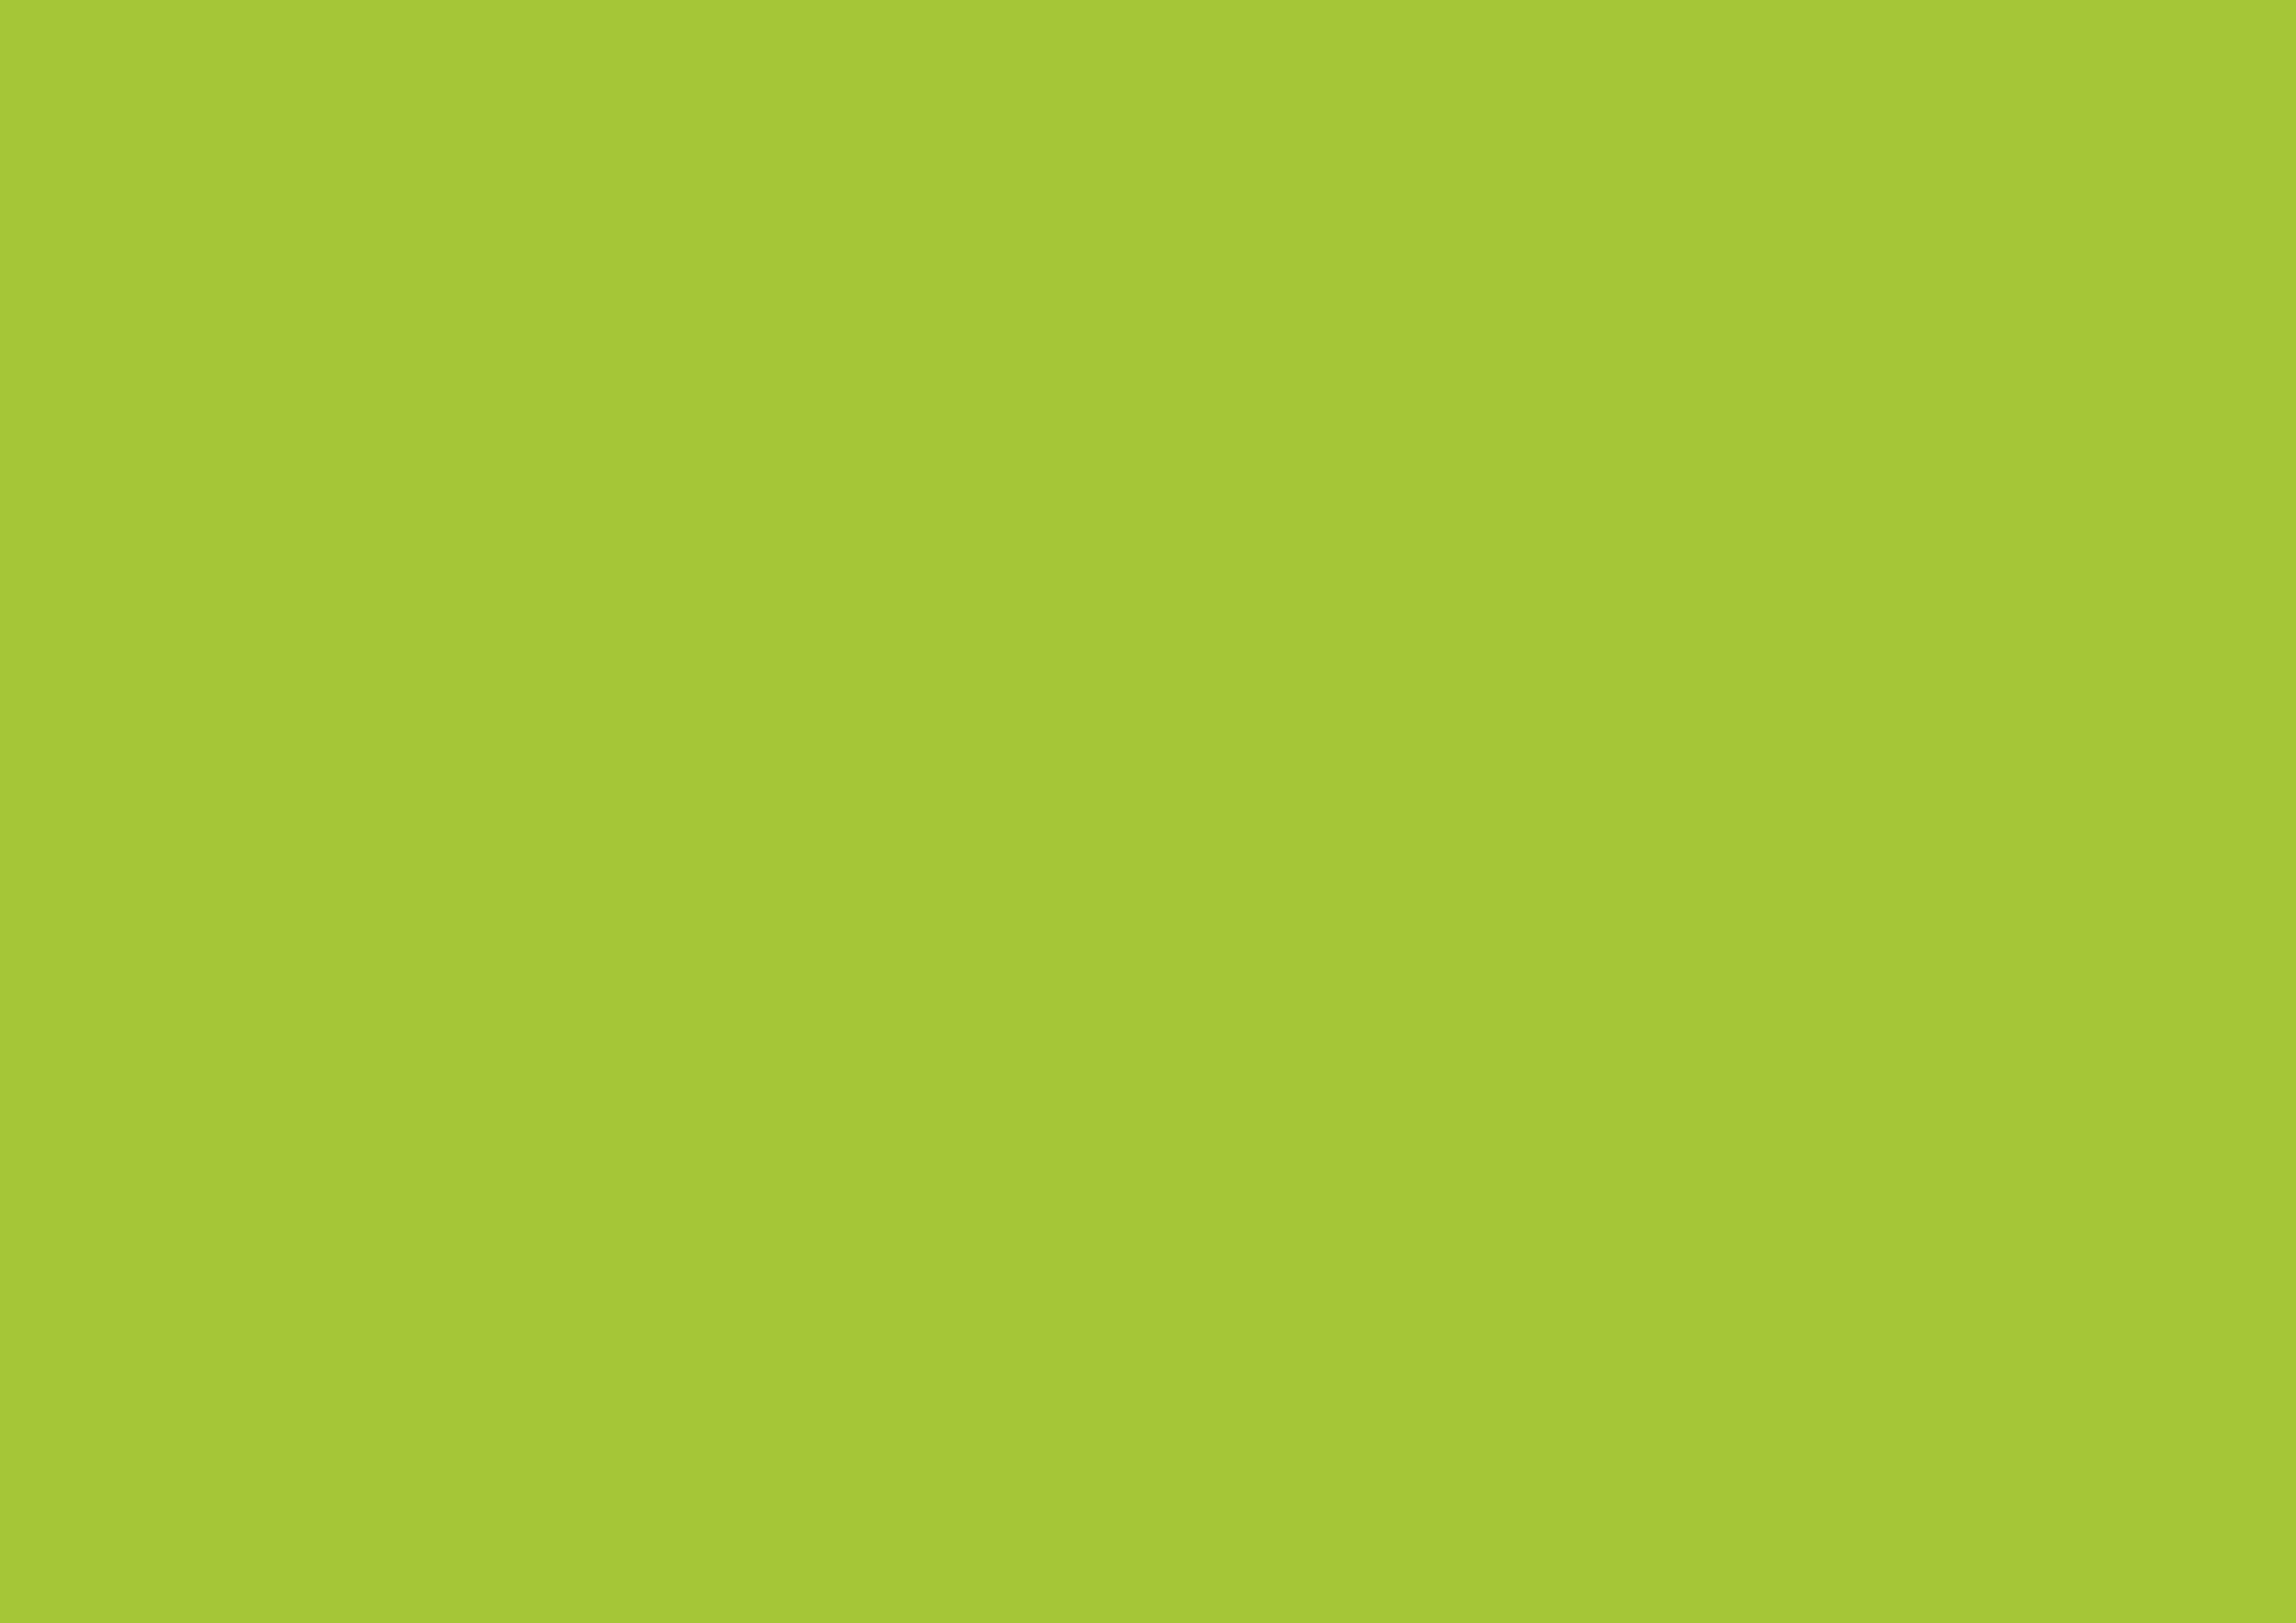 3508x2480 Android Green Solid Color Background